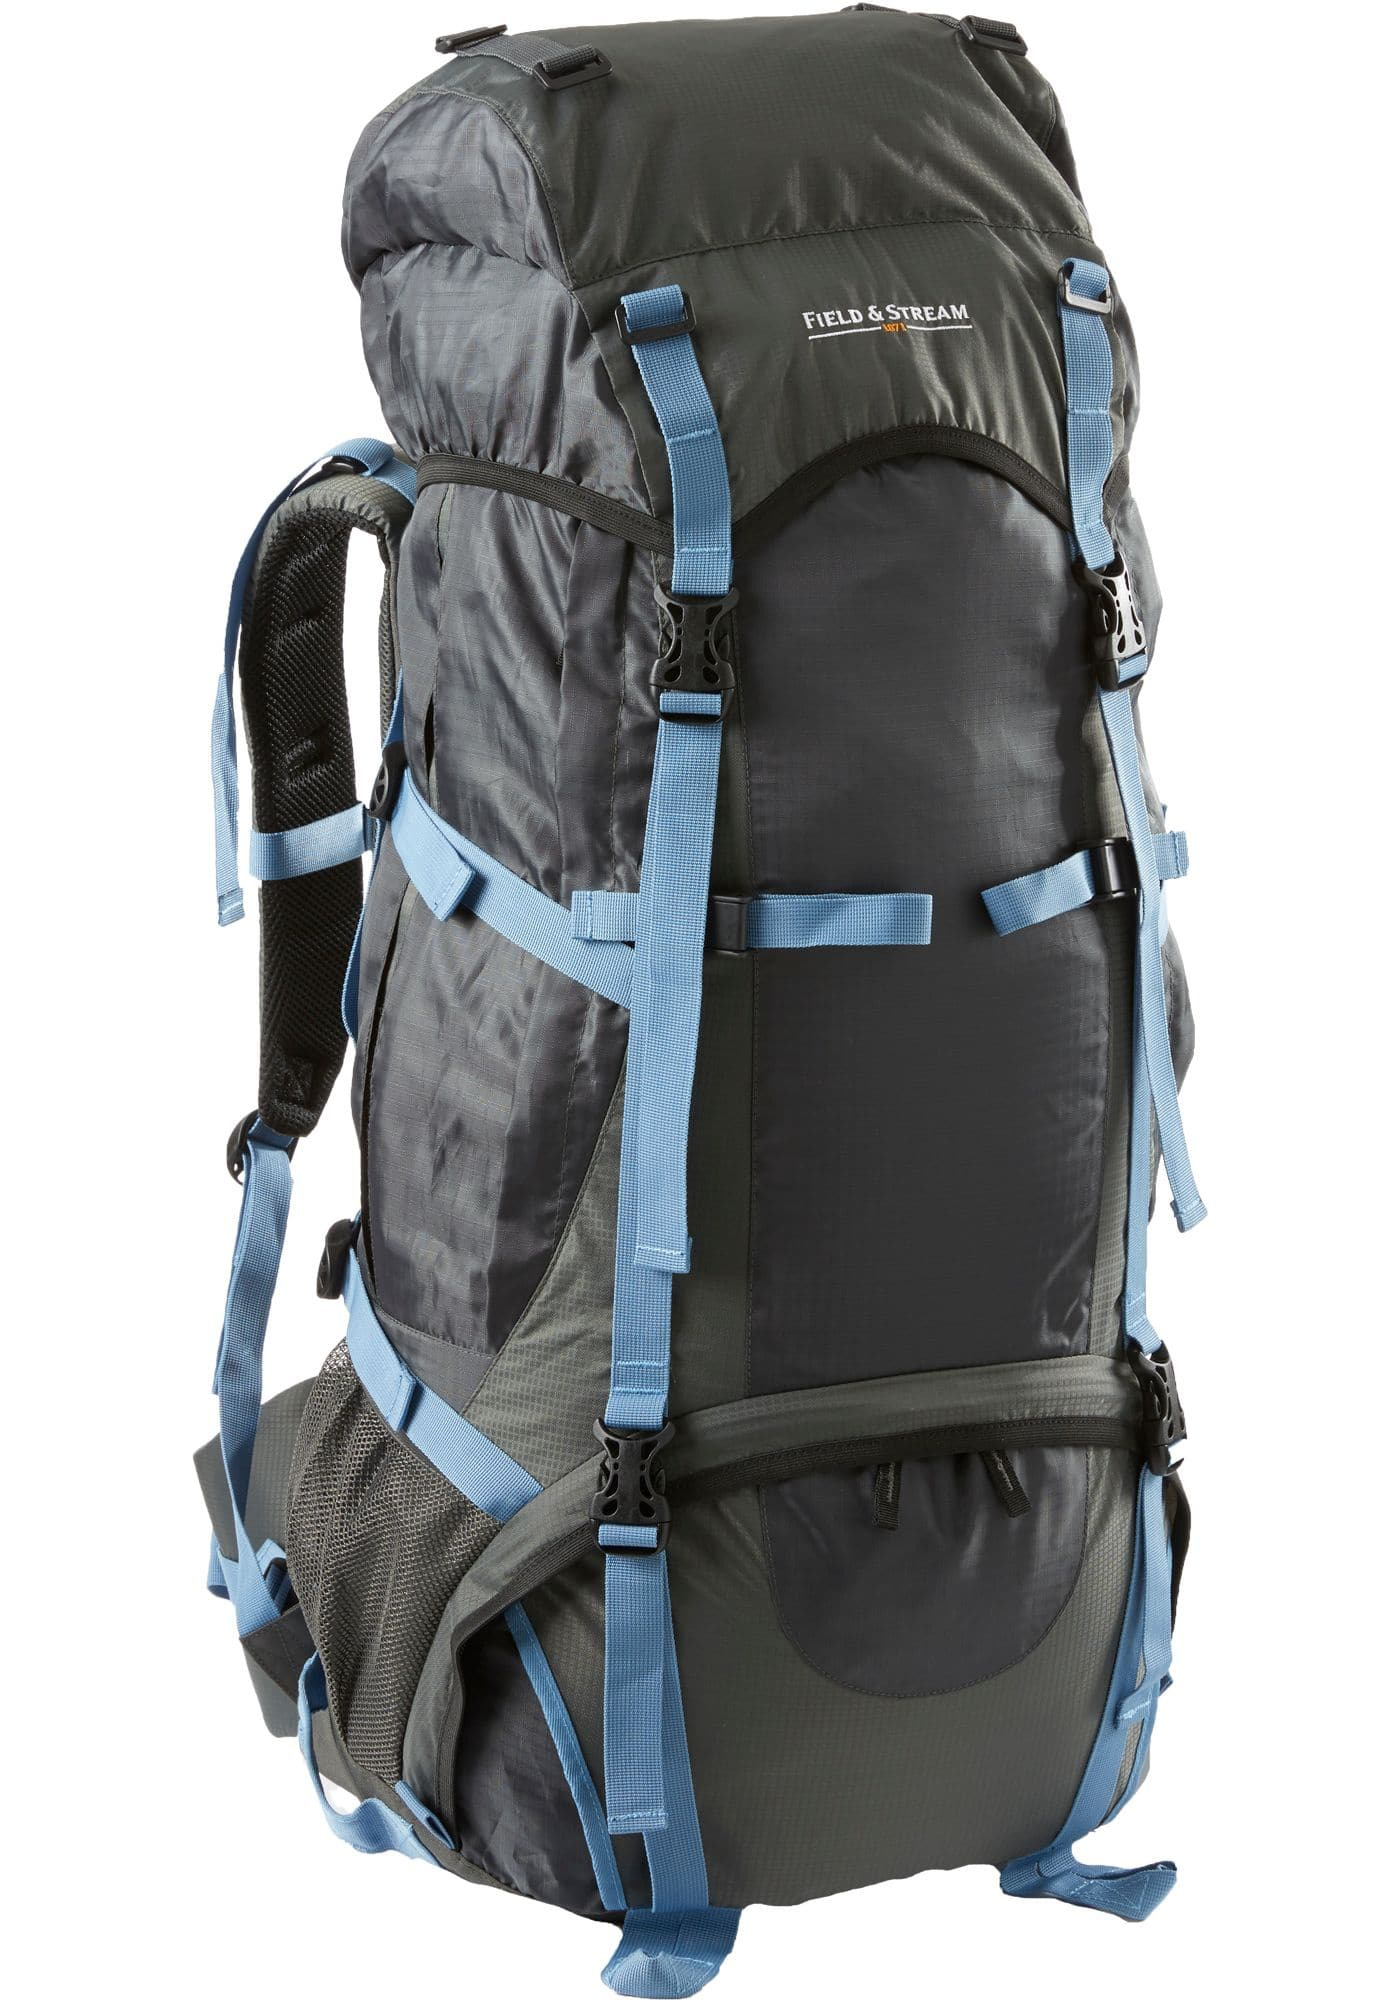 Field & Stream Mountain Scout 65L Internal Frame Pack (dark shadow) $40 + F/S $49+ or Free Store Pickup at Dick's Sporting Goods